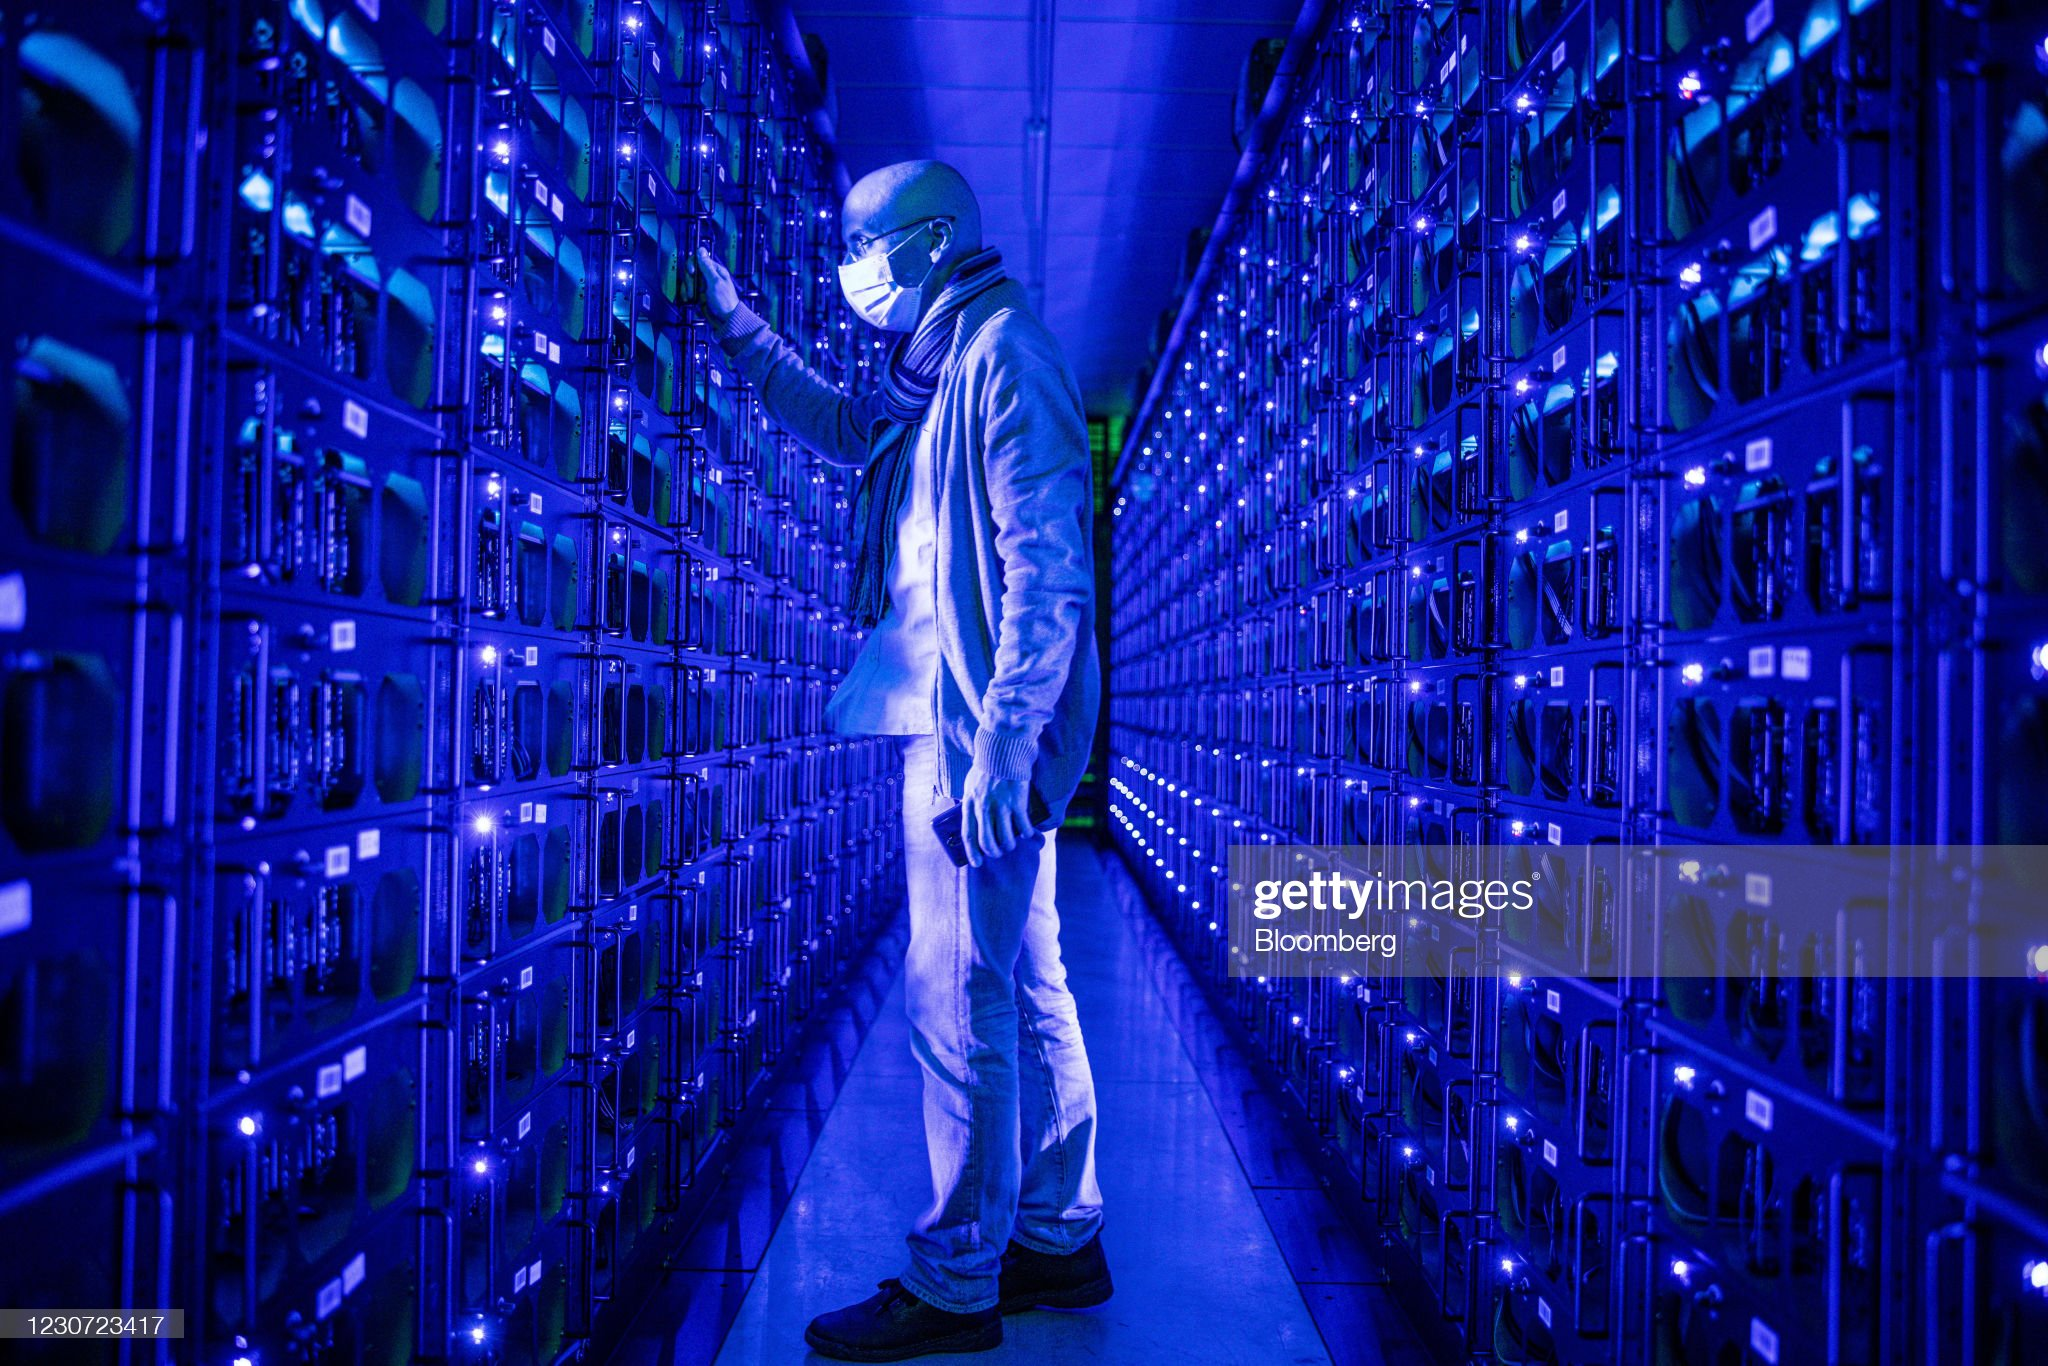 Mining the Worlds Second-most-valuable Cryptocurrency at Evobits I.T SRL : News Photo